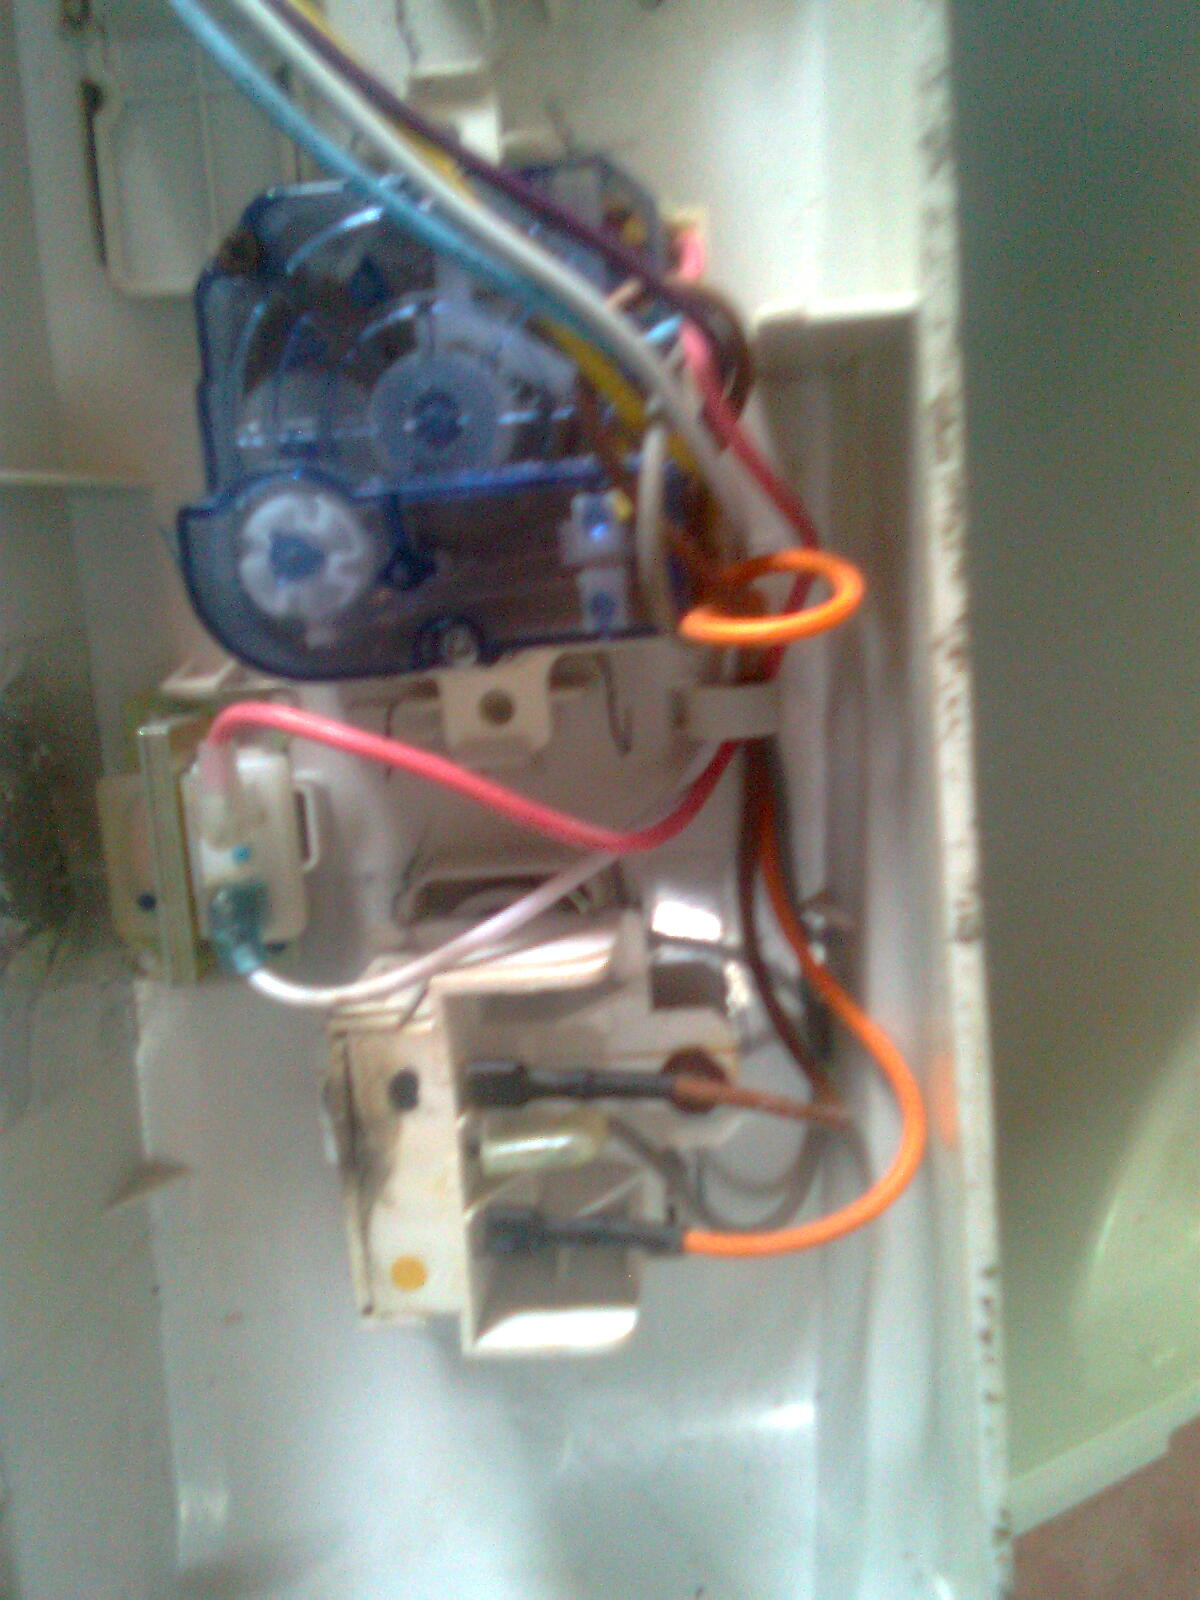 Service Washing Machine Ernakulam Aluva Angamaly Kochi Vytilla Call Wiring Diagram Of Ifb Pcb Ciruit Making All Models Spining Sound Problems Spares Suppliers Electrical Work Maintance